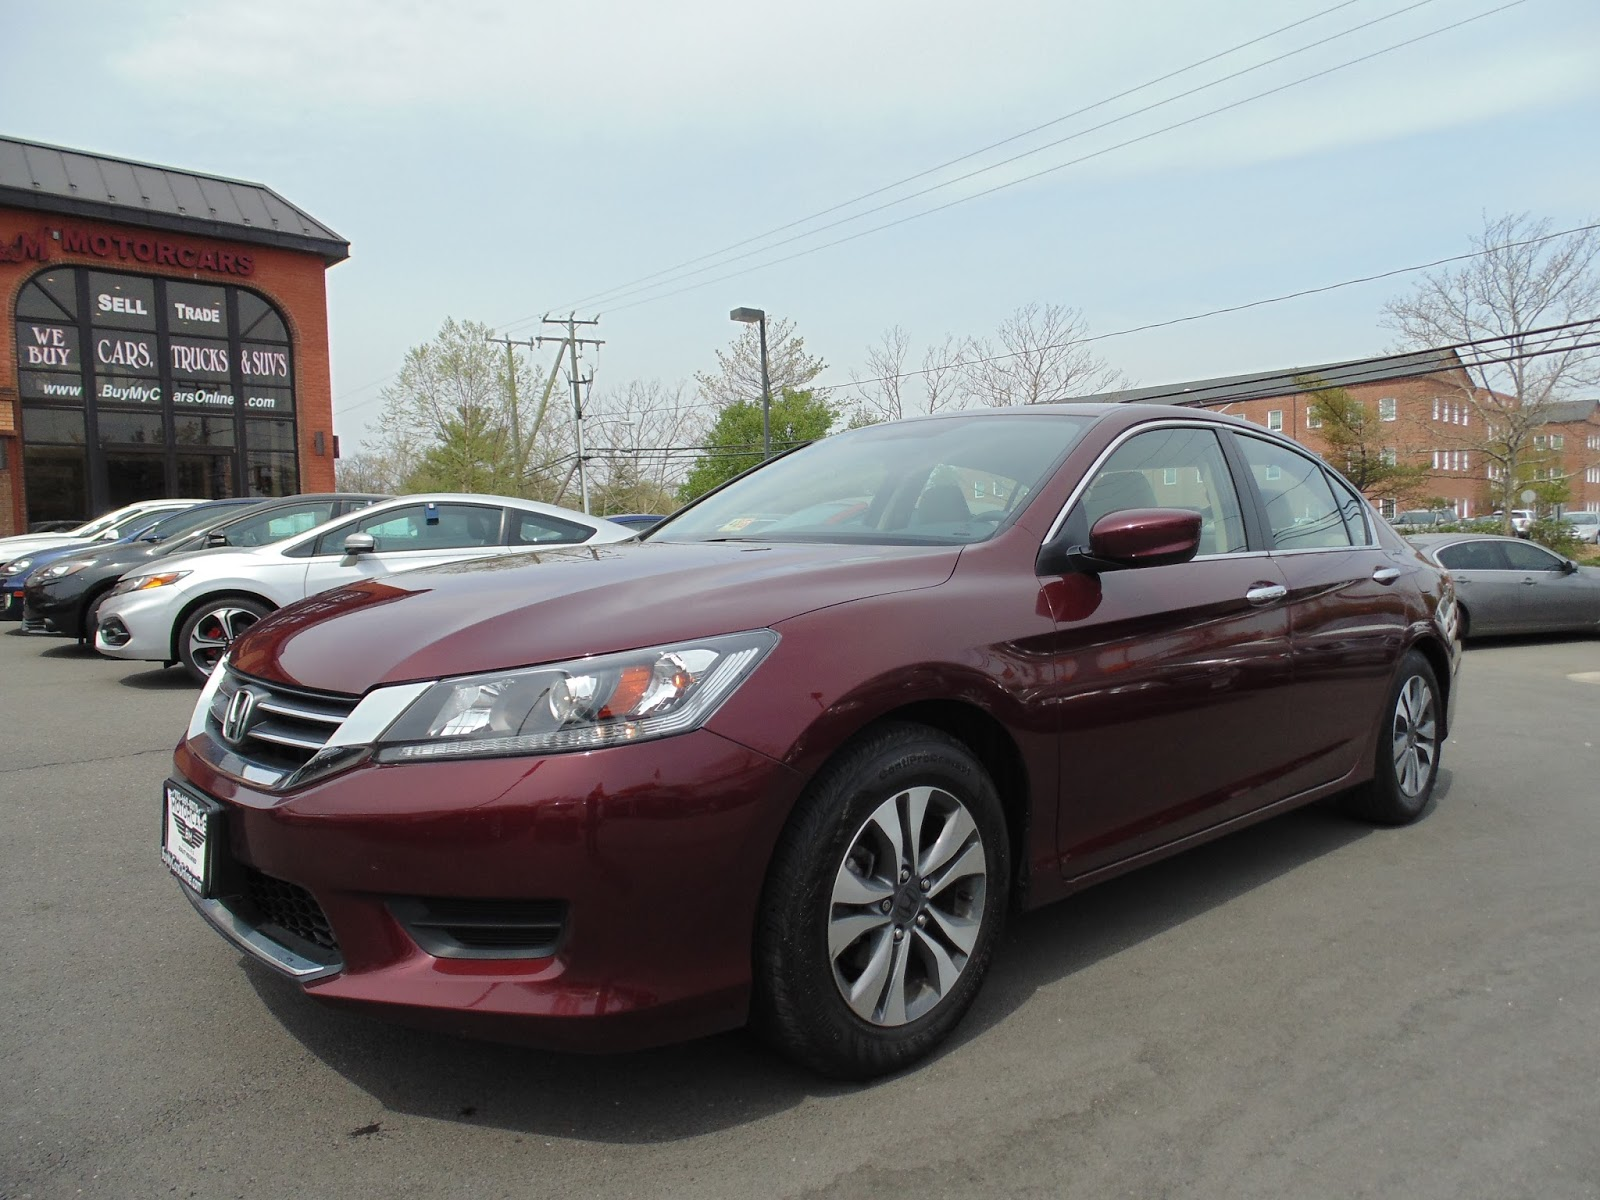 Local Used Cars for Sale Elegant Local Used Cars for Sale 2013 Honda Accord Lx In Maroon Color Up